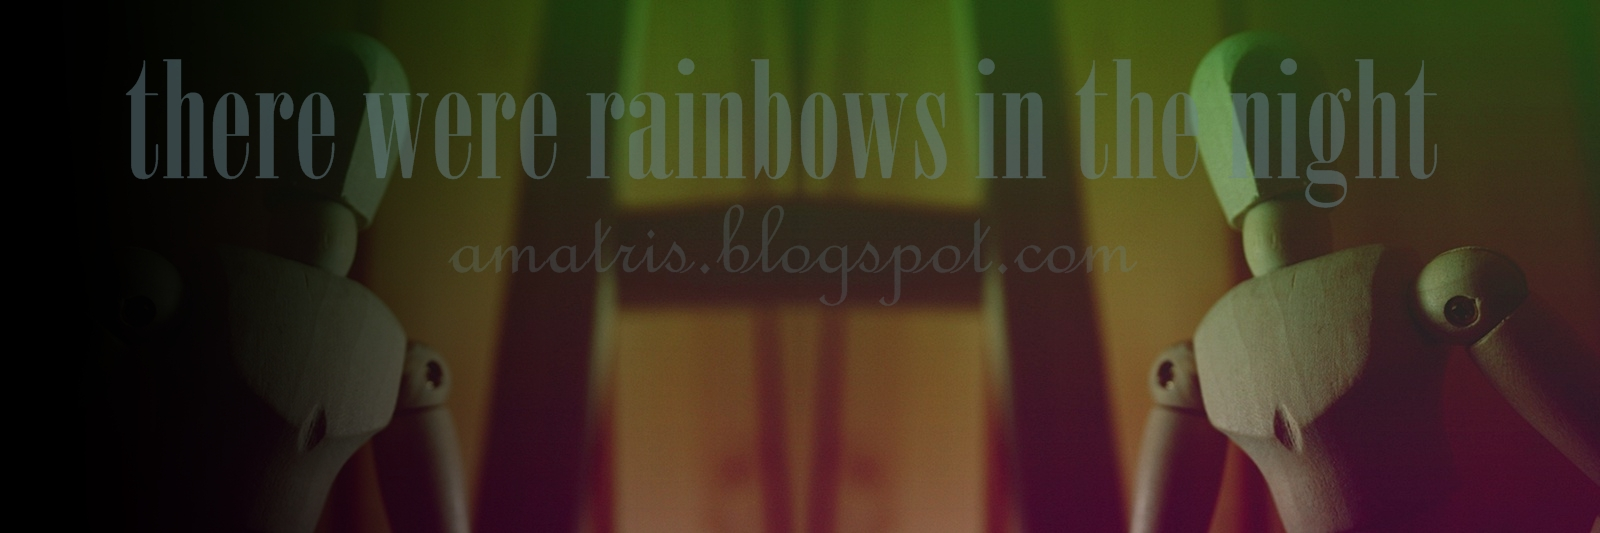 There were rainbows in the night